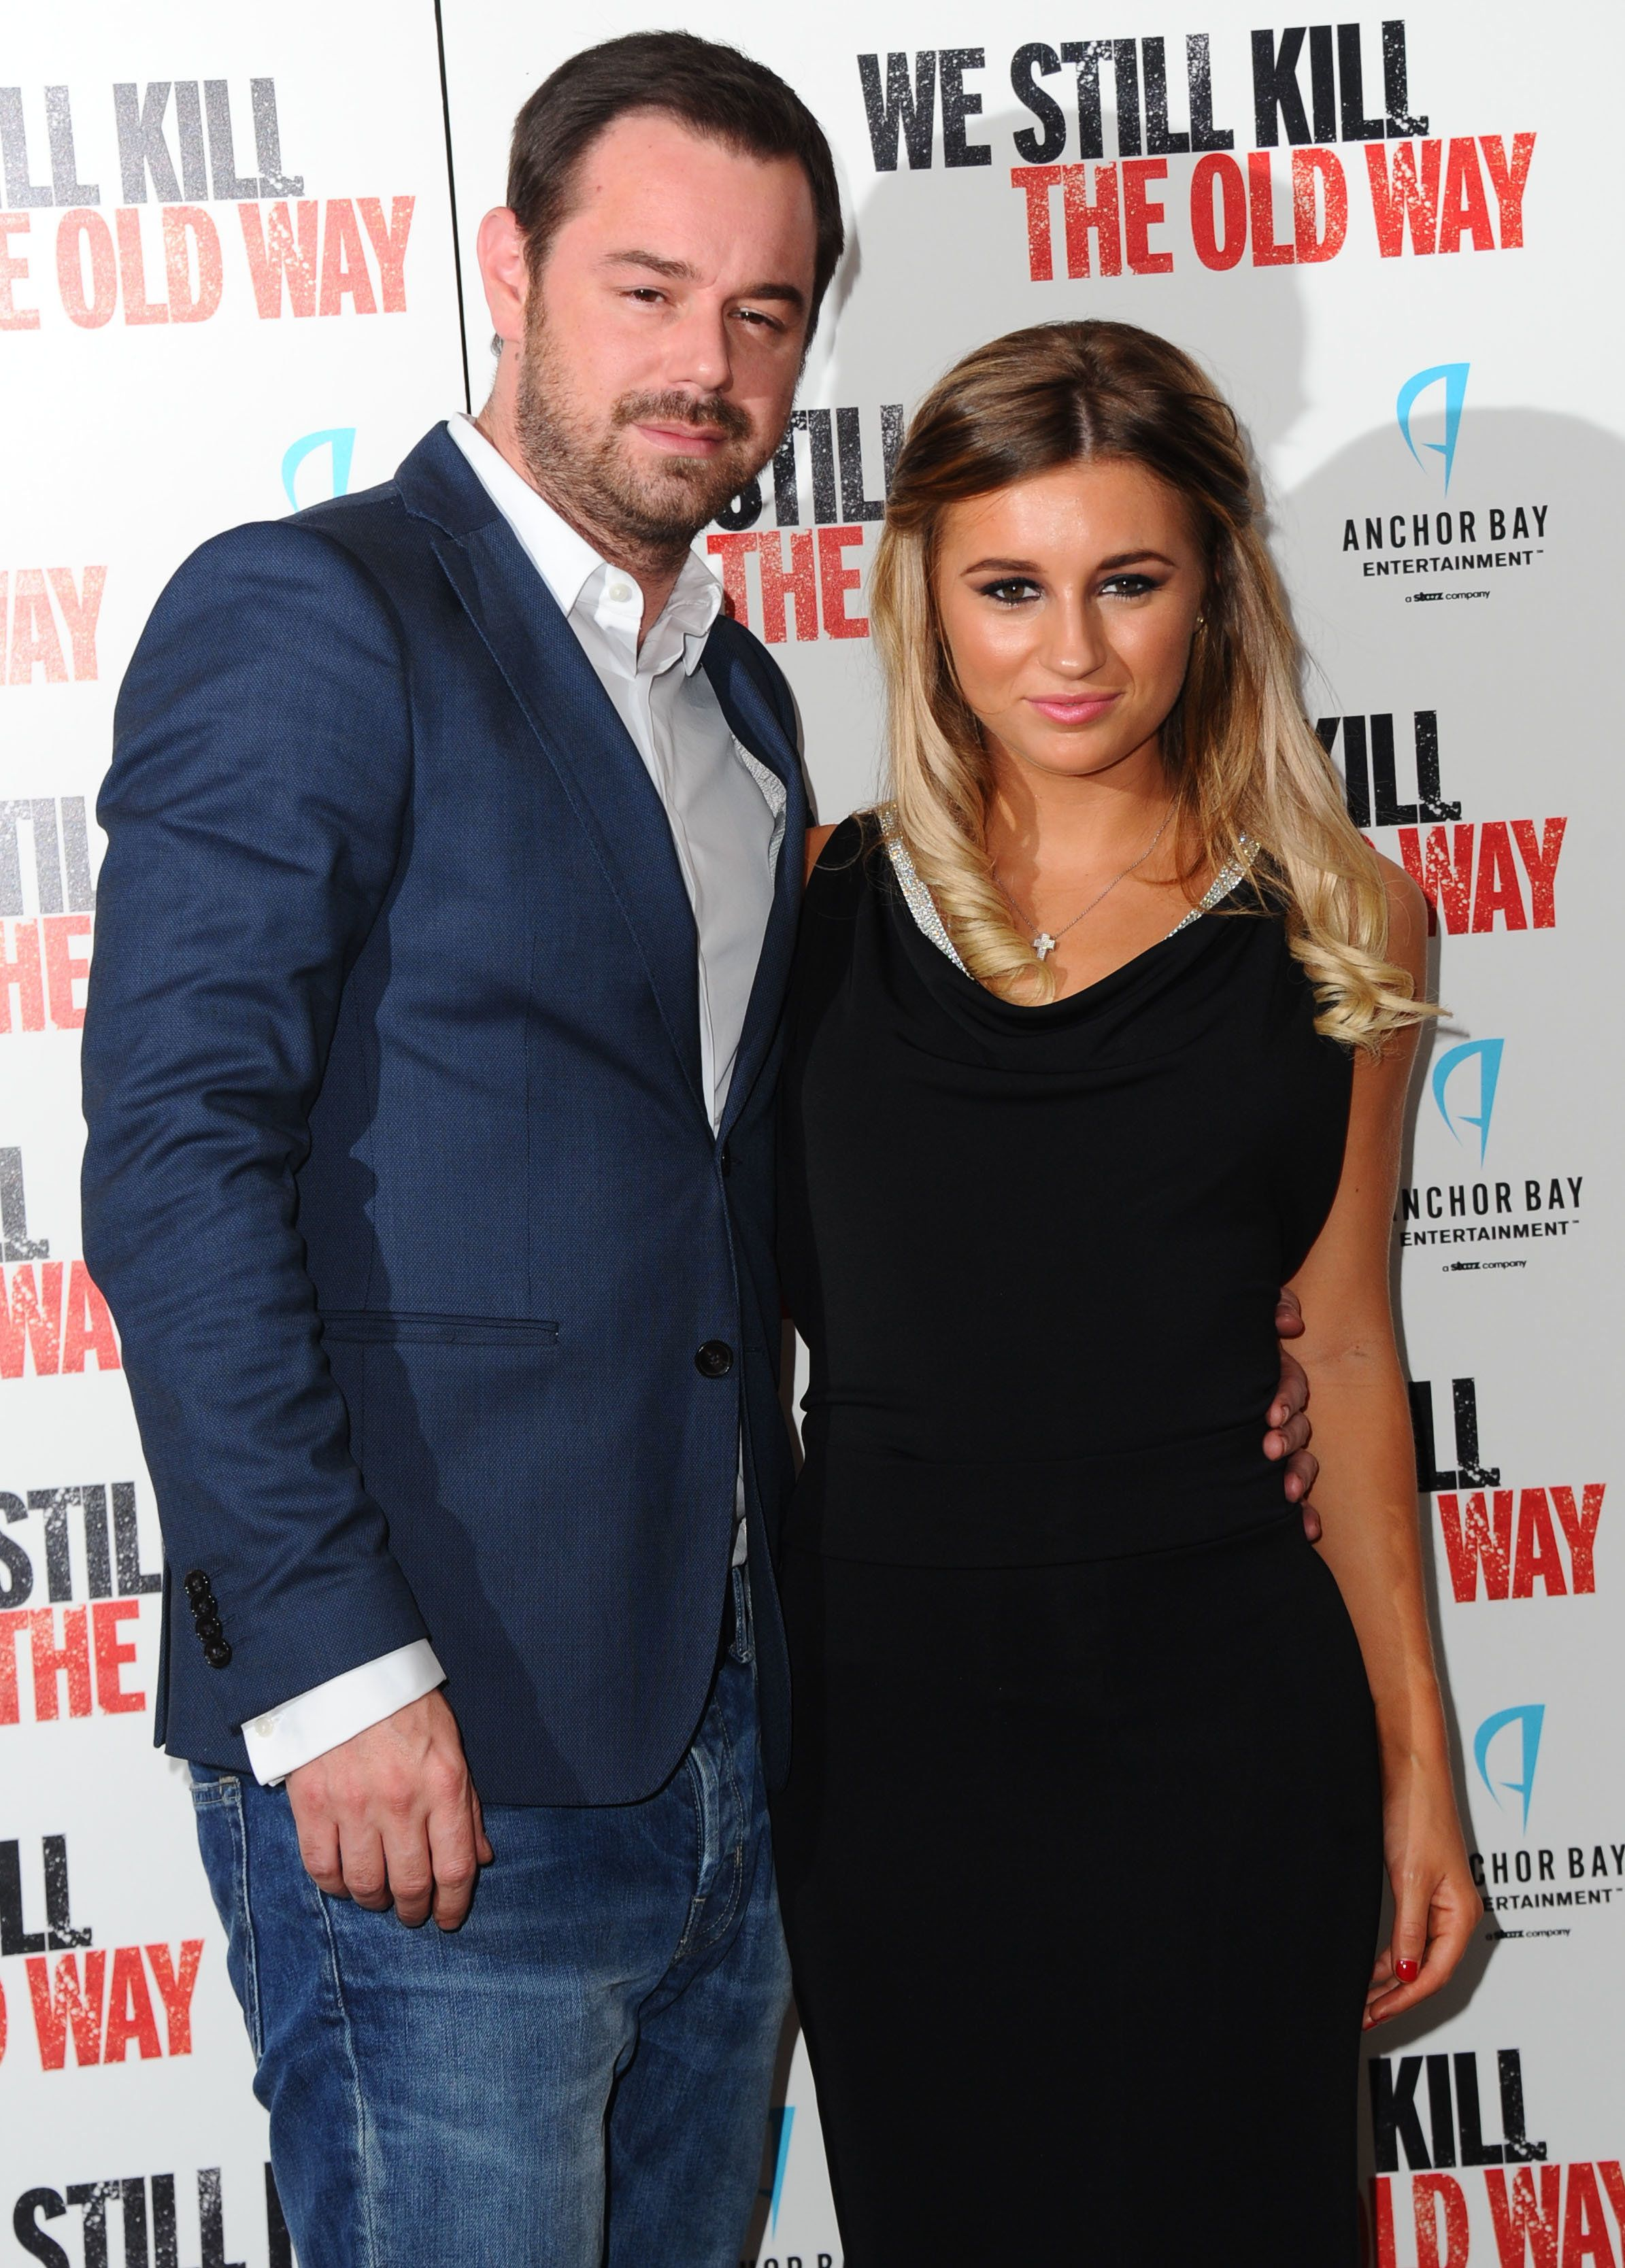 Danny Dyer Speaks Of His Pride At Watching Daughter Dani On 'Love Island'